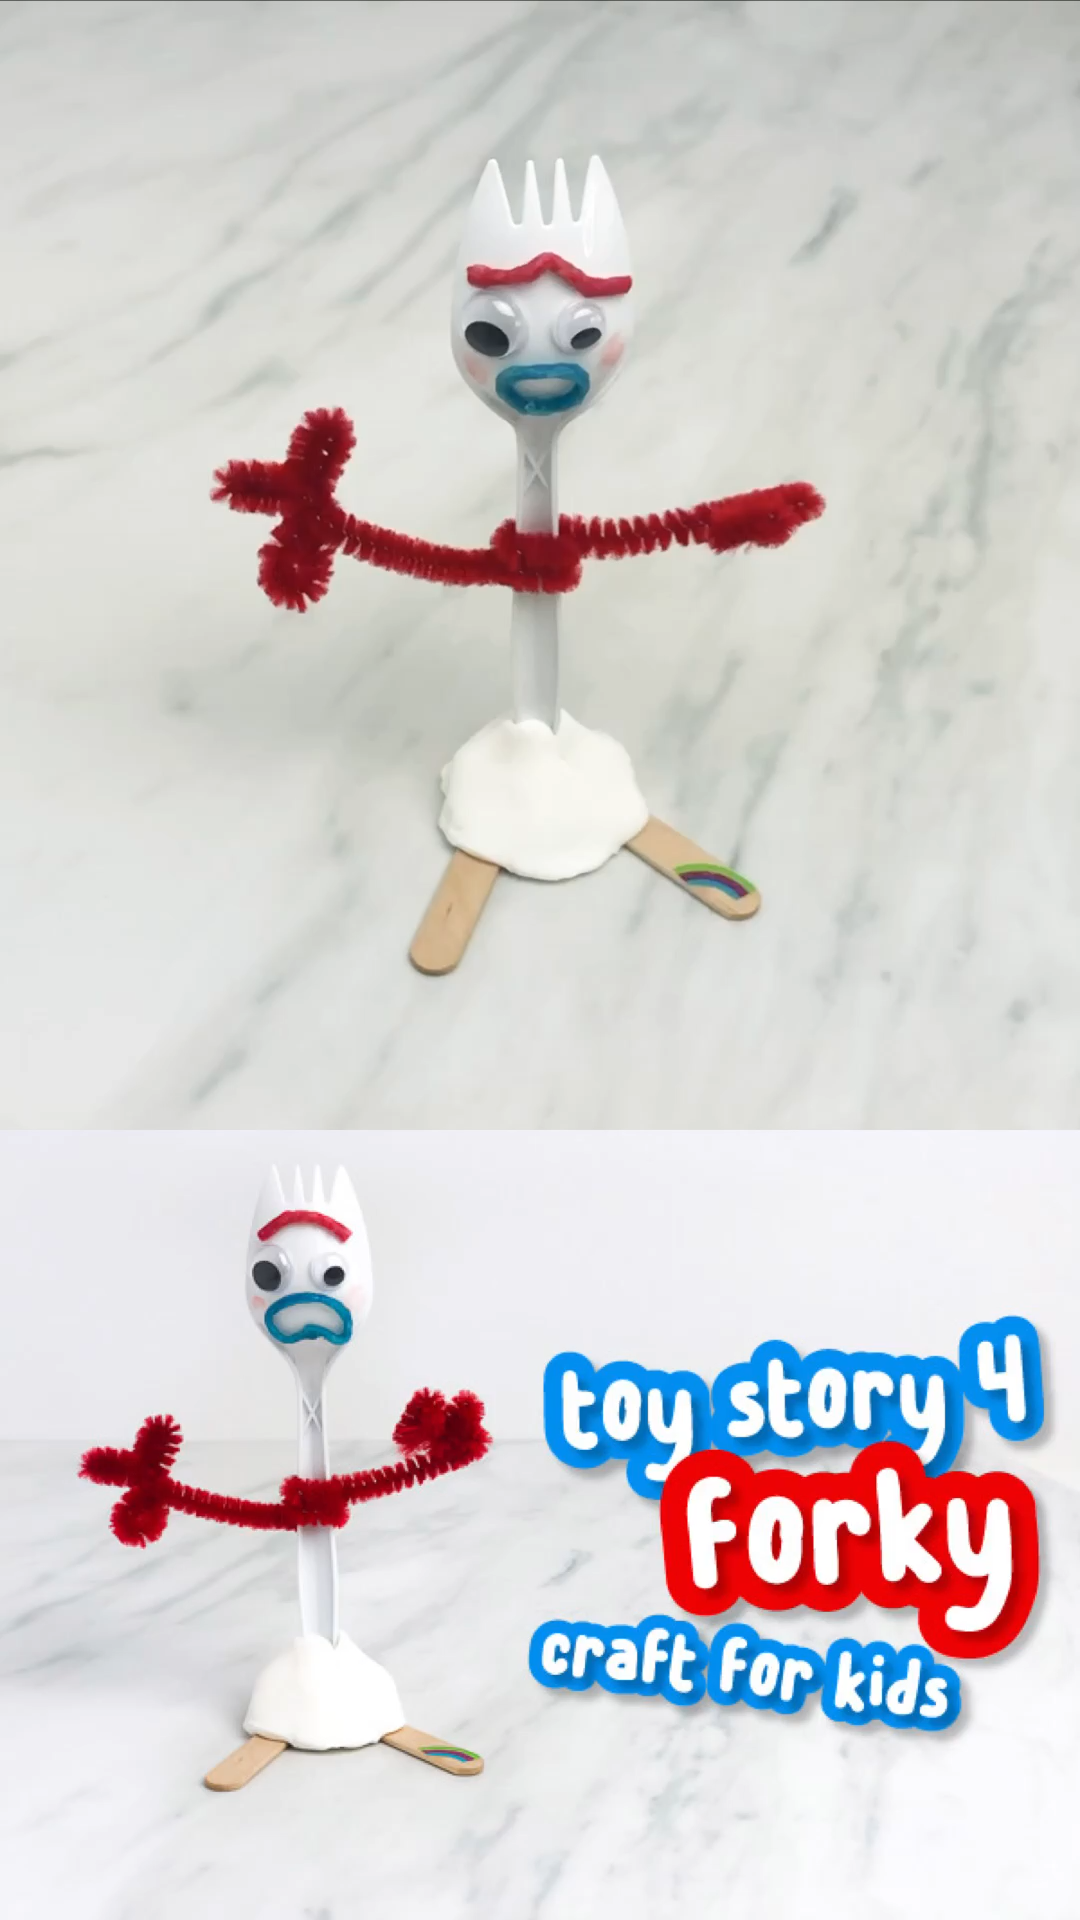 Diy Forky Craft Toy From Disney S Toy Story 4